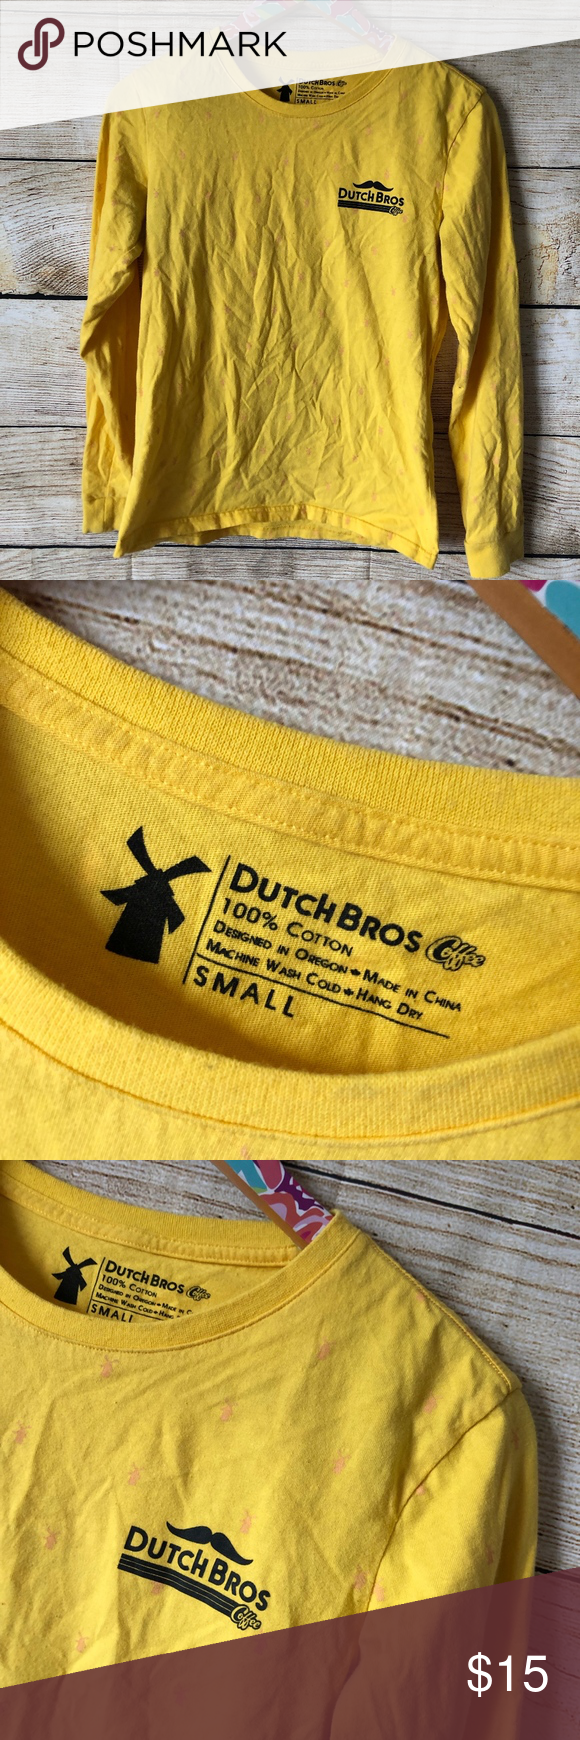 Dutch Bros yellow tee size small // N13 Yellow long sleeve Dutch Bros tee size Small. Yellow with light pink windmills all over. Gently used and in great condition! Bundle with other items for an even deeper discount.// N13 Dutch Bros Tops Tees - Long Sleeve #dutchbros Dutch Bros yellow tee size small // N13 Yellow long sleeve Dutch Bros tee size Small. Yellow with light pink windmills all over. Gently used and in great condition! Bundle with other items for an even deeper discount.// N13 Dutch #dutchbros